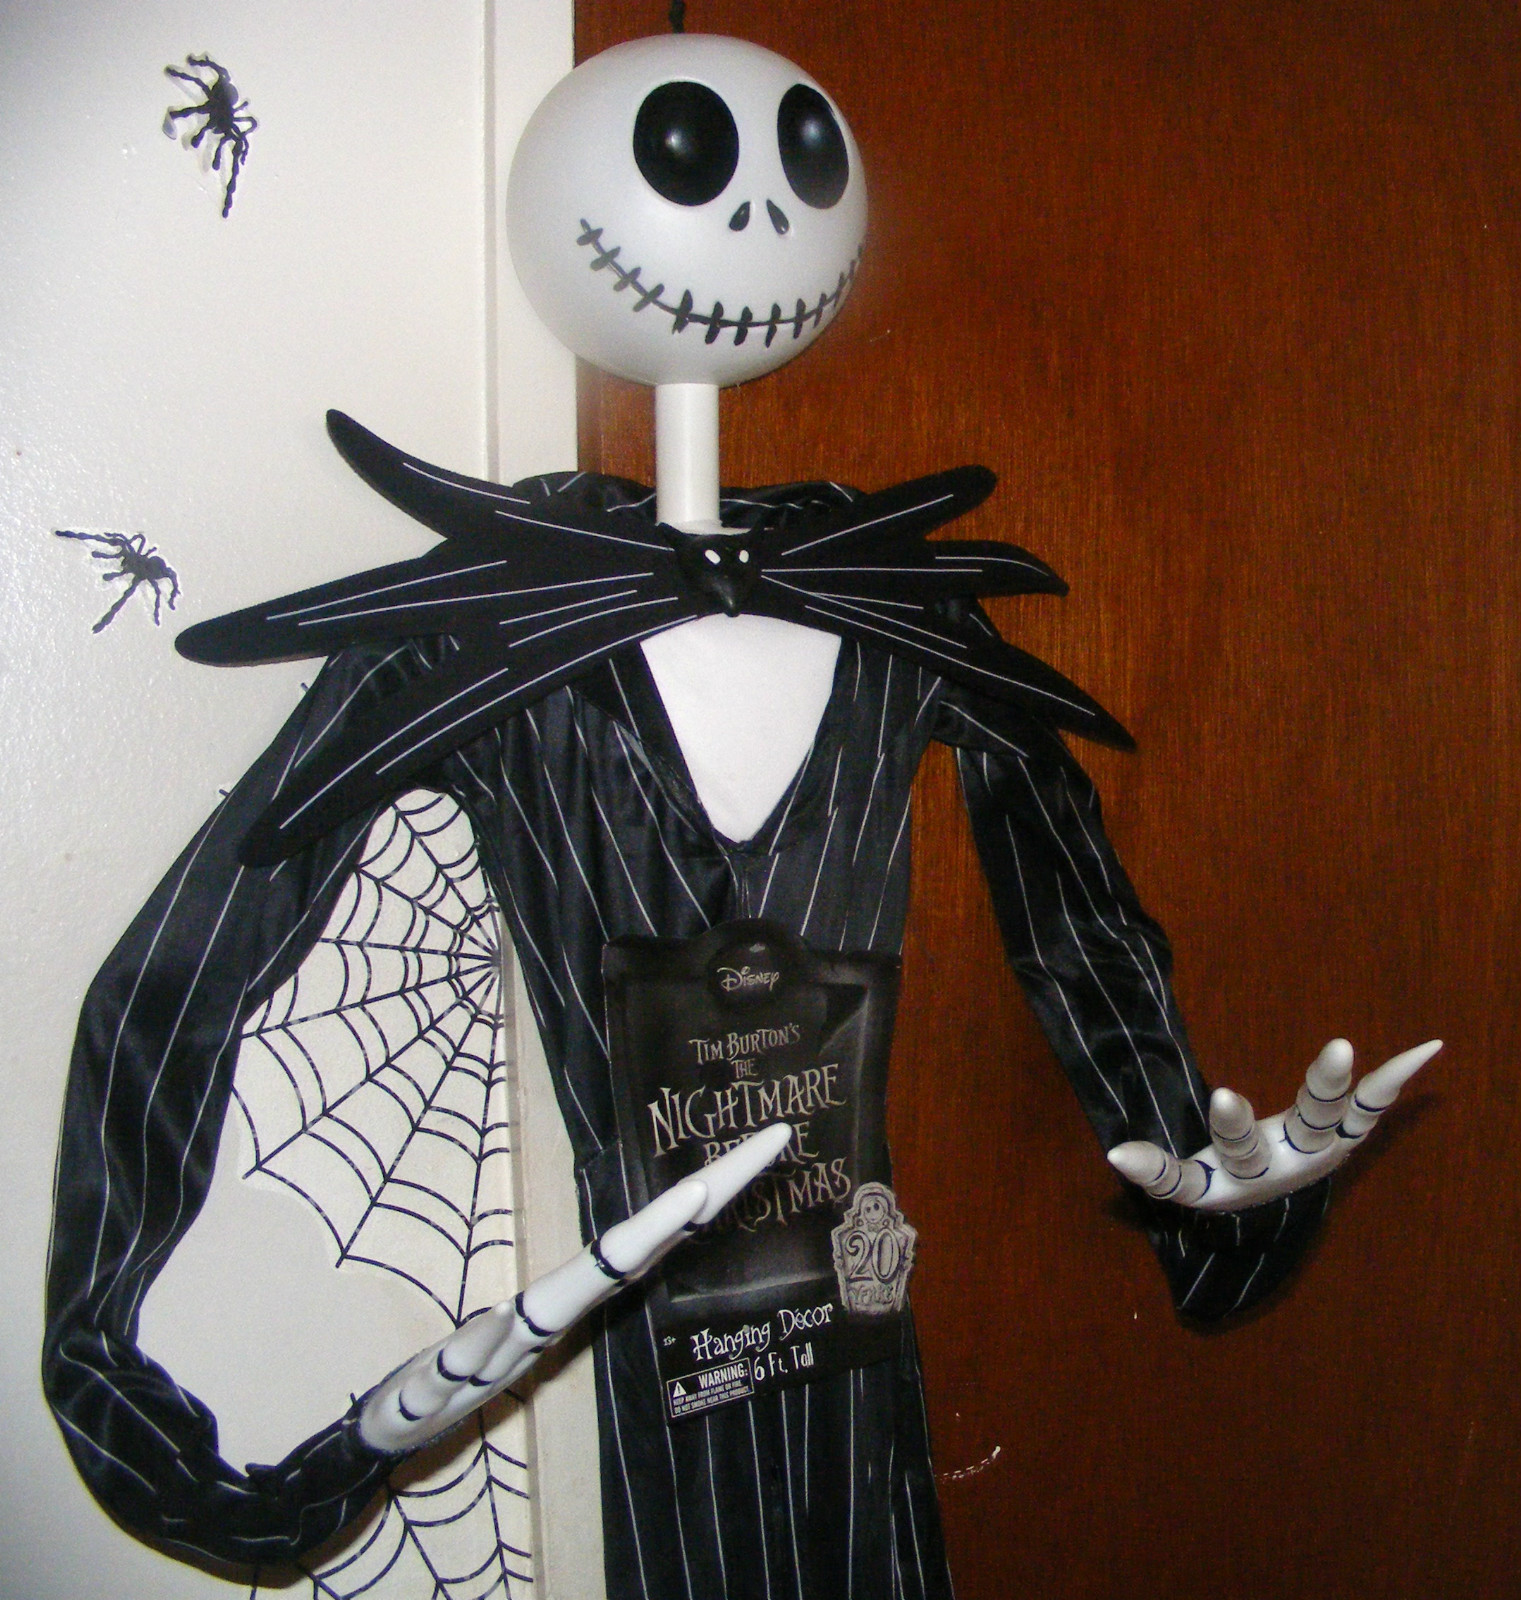 6ft jack skellington nightmare before christmas posable - Jack skellington decorations halloween ...